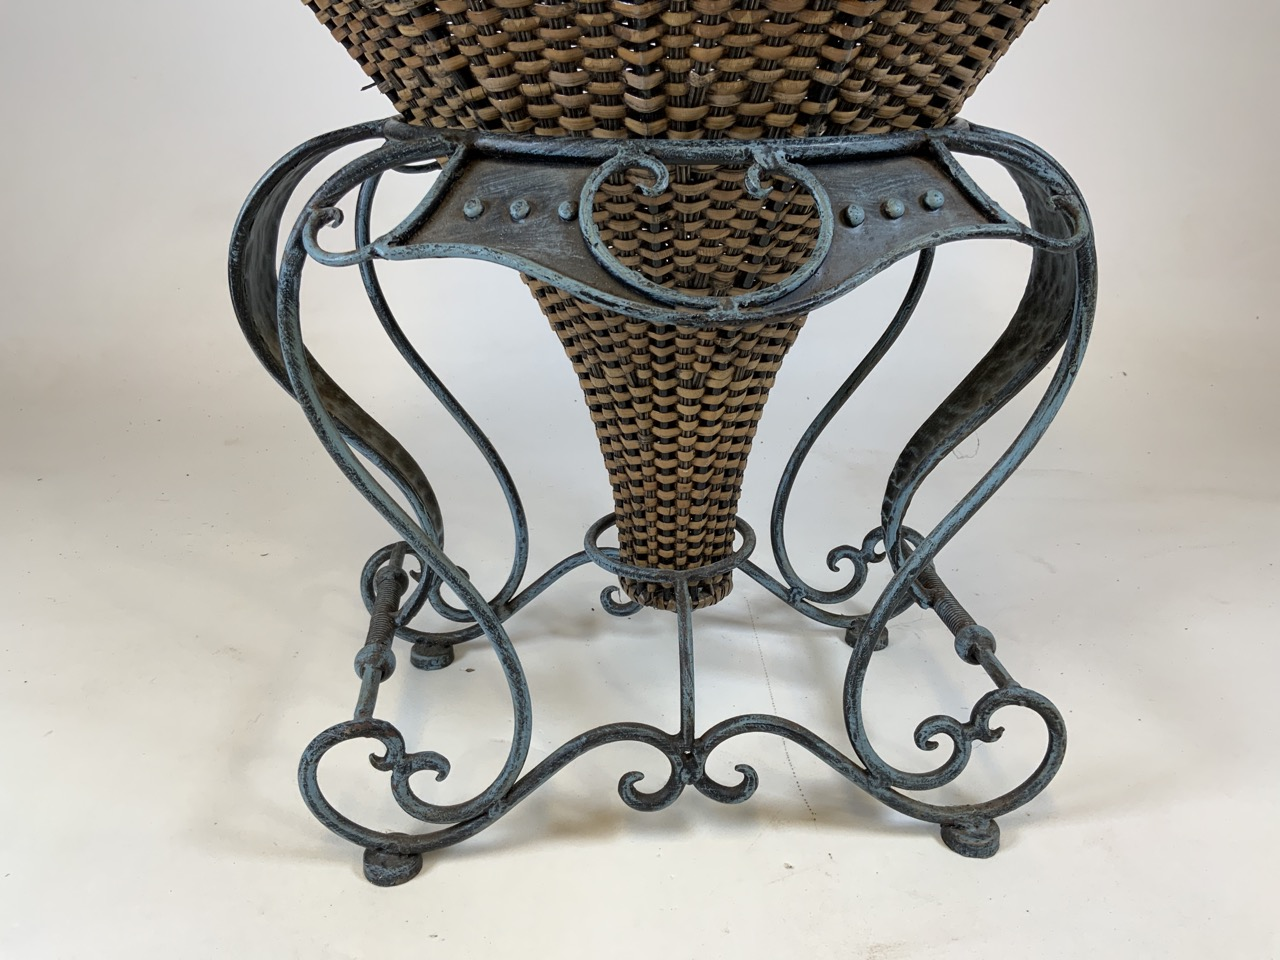 A large wicker conservatory vase in stand with metal hoop handles and decorative metal top. W:24cm x - Image 4 of 5